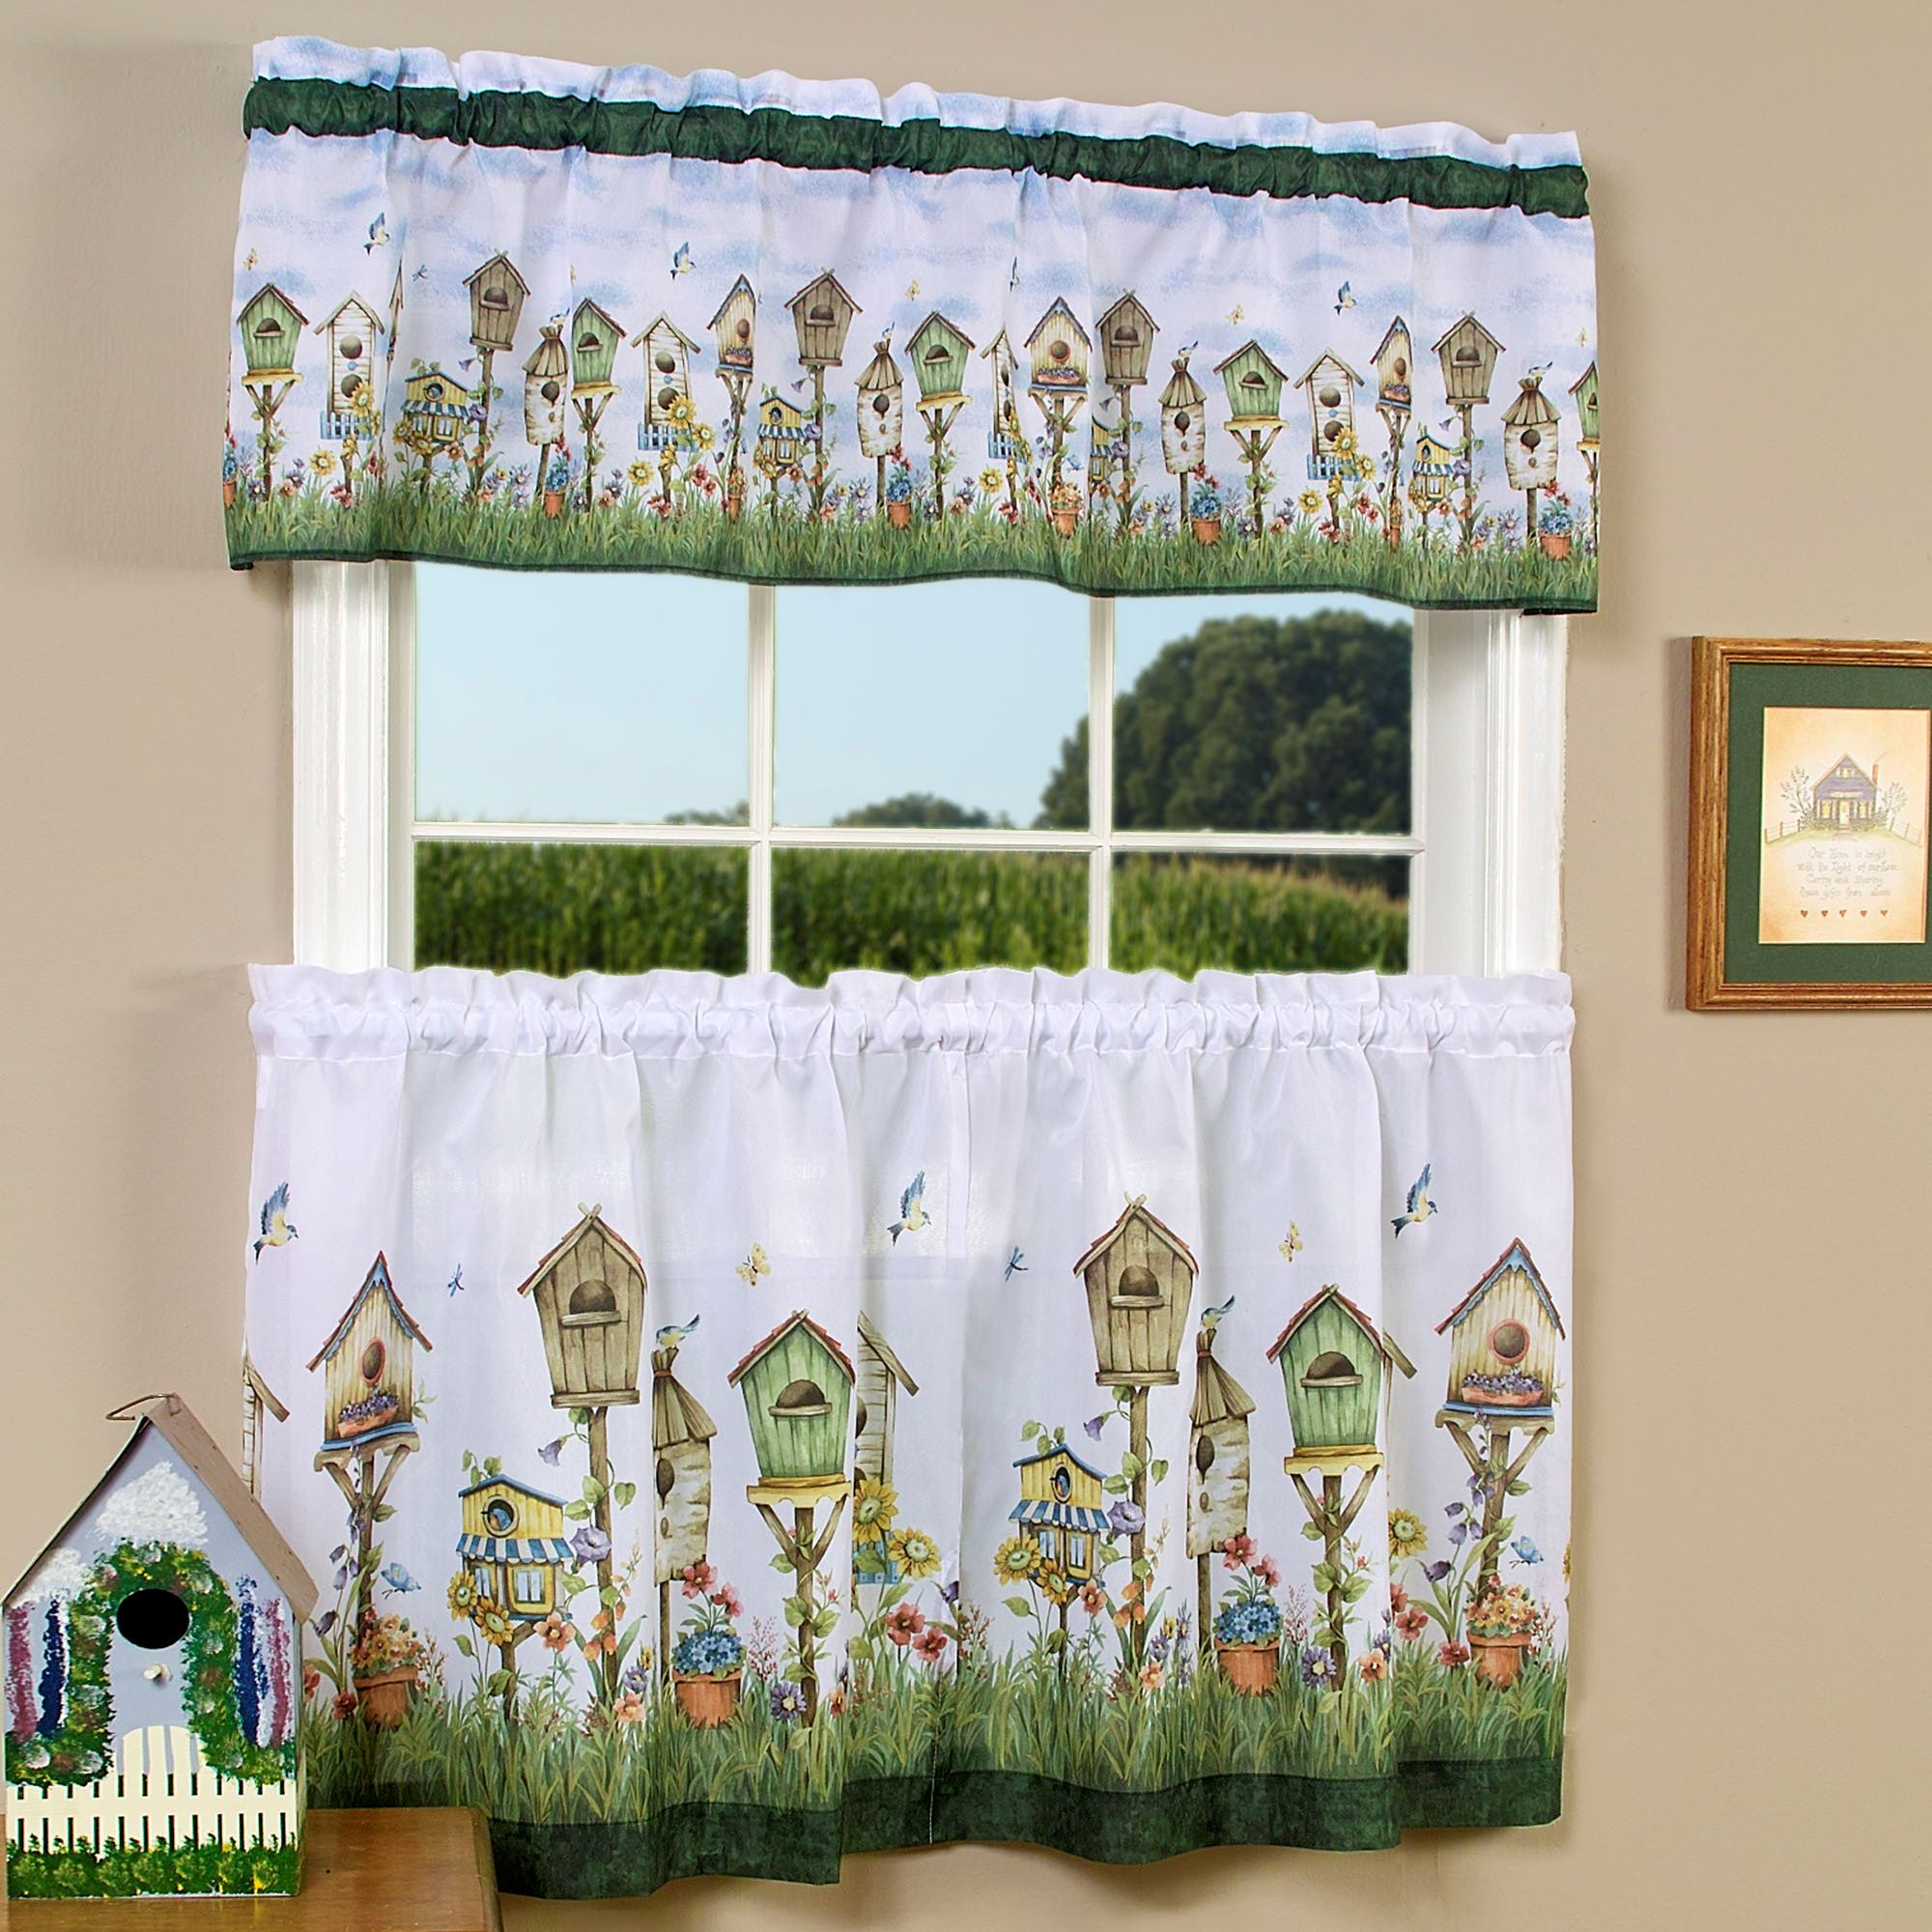 wonderful Kitchen Curtain And Valance Set Part - 11: Touch to zoom